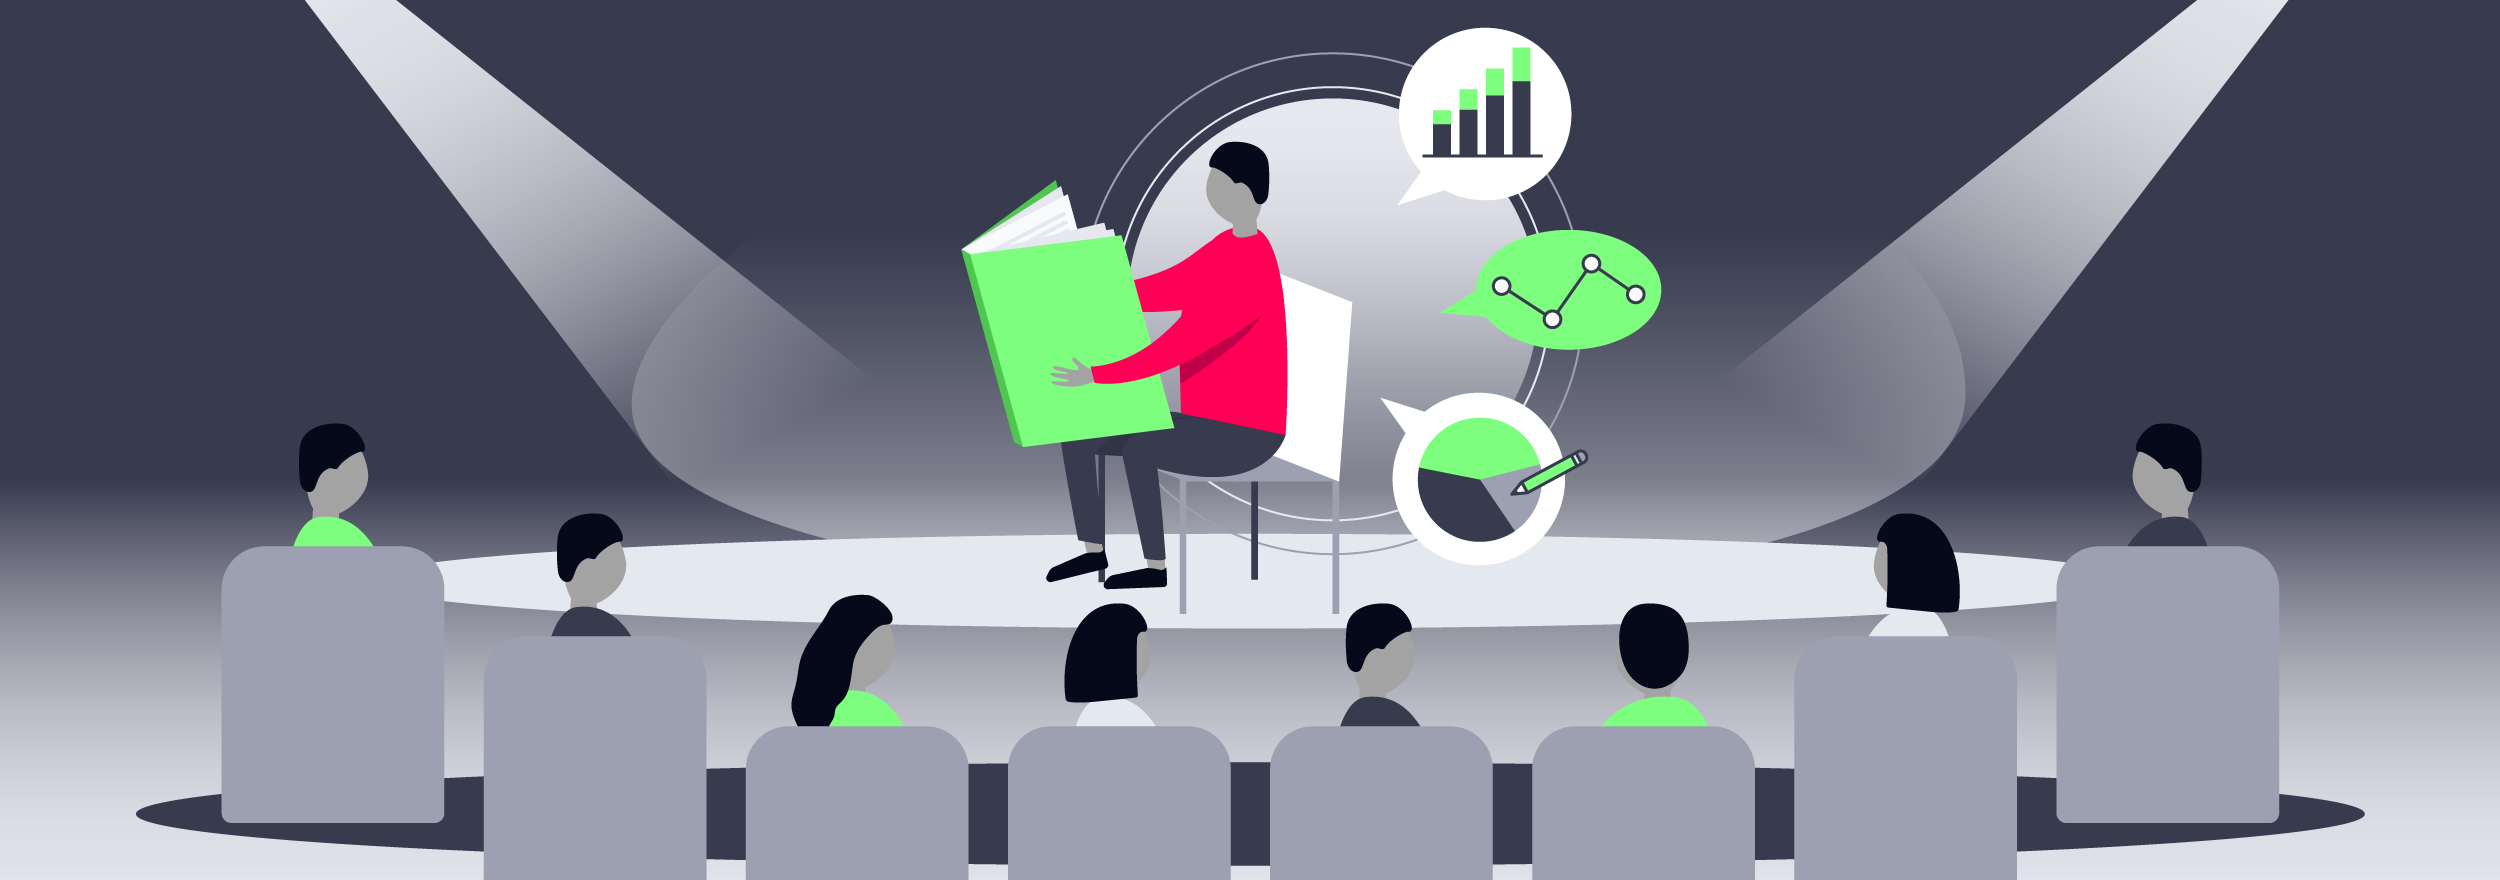 Data Storytelling:  Best Practices and Visualization Tips To Create Remarkable Reports